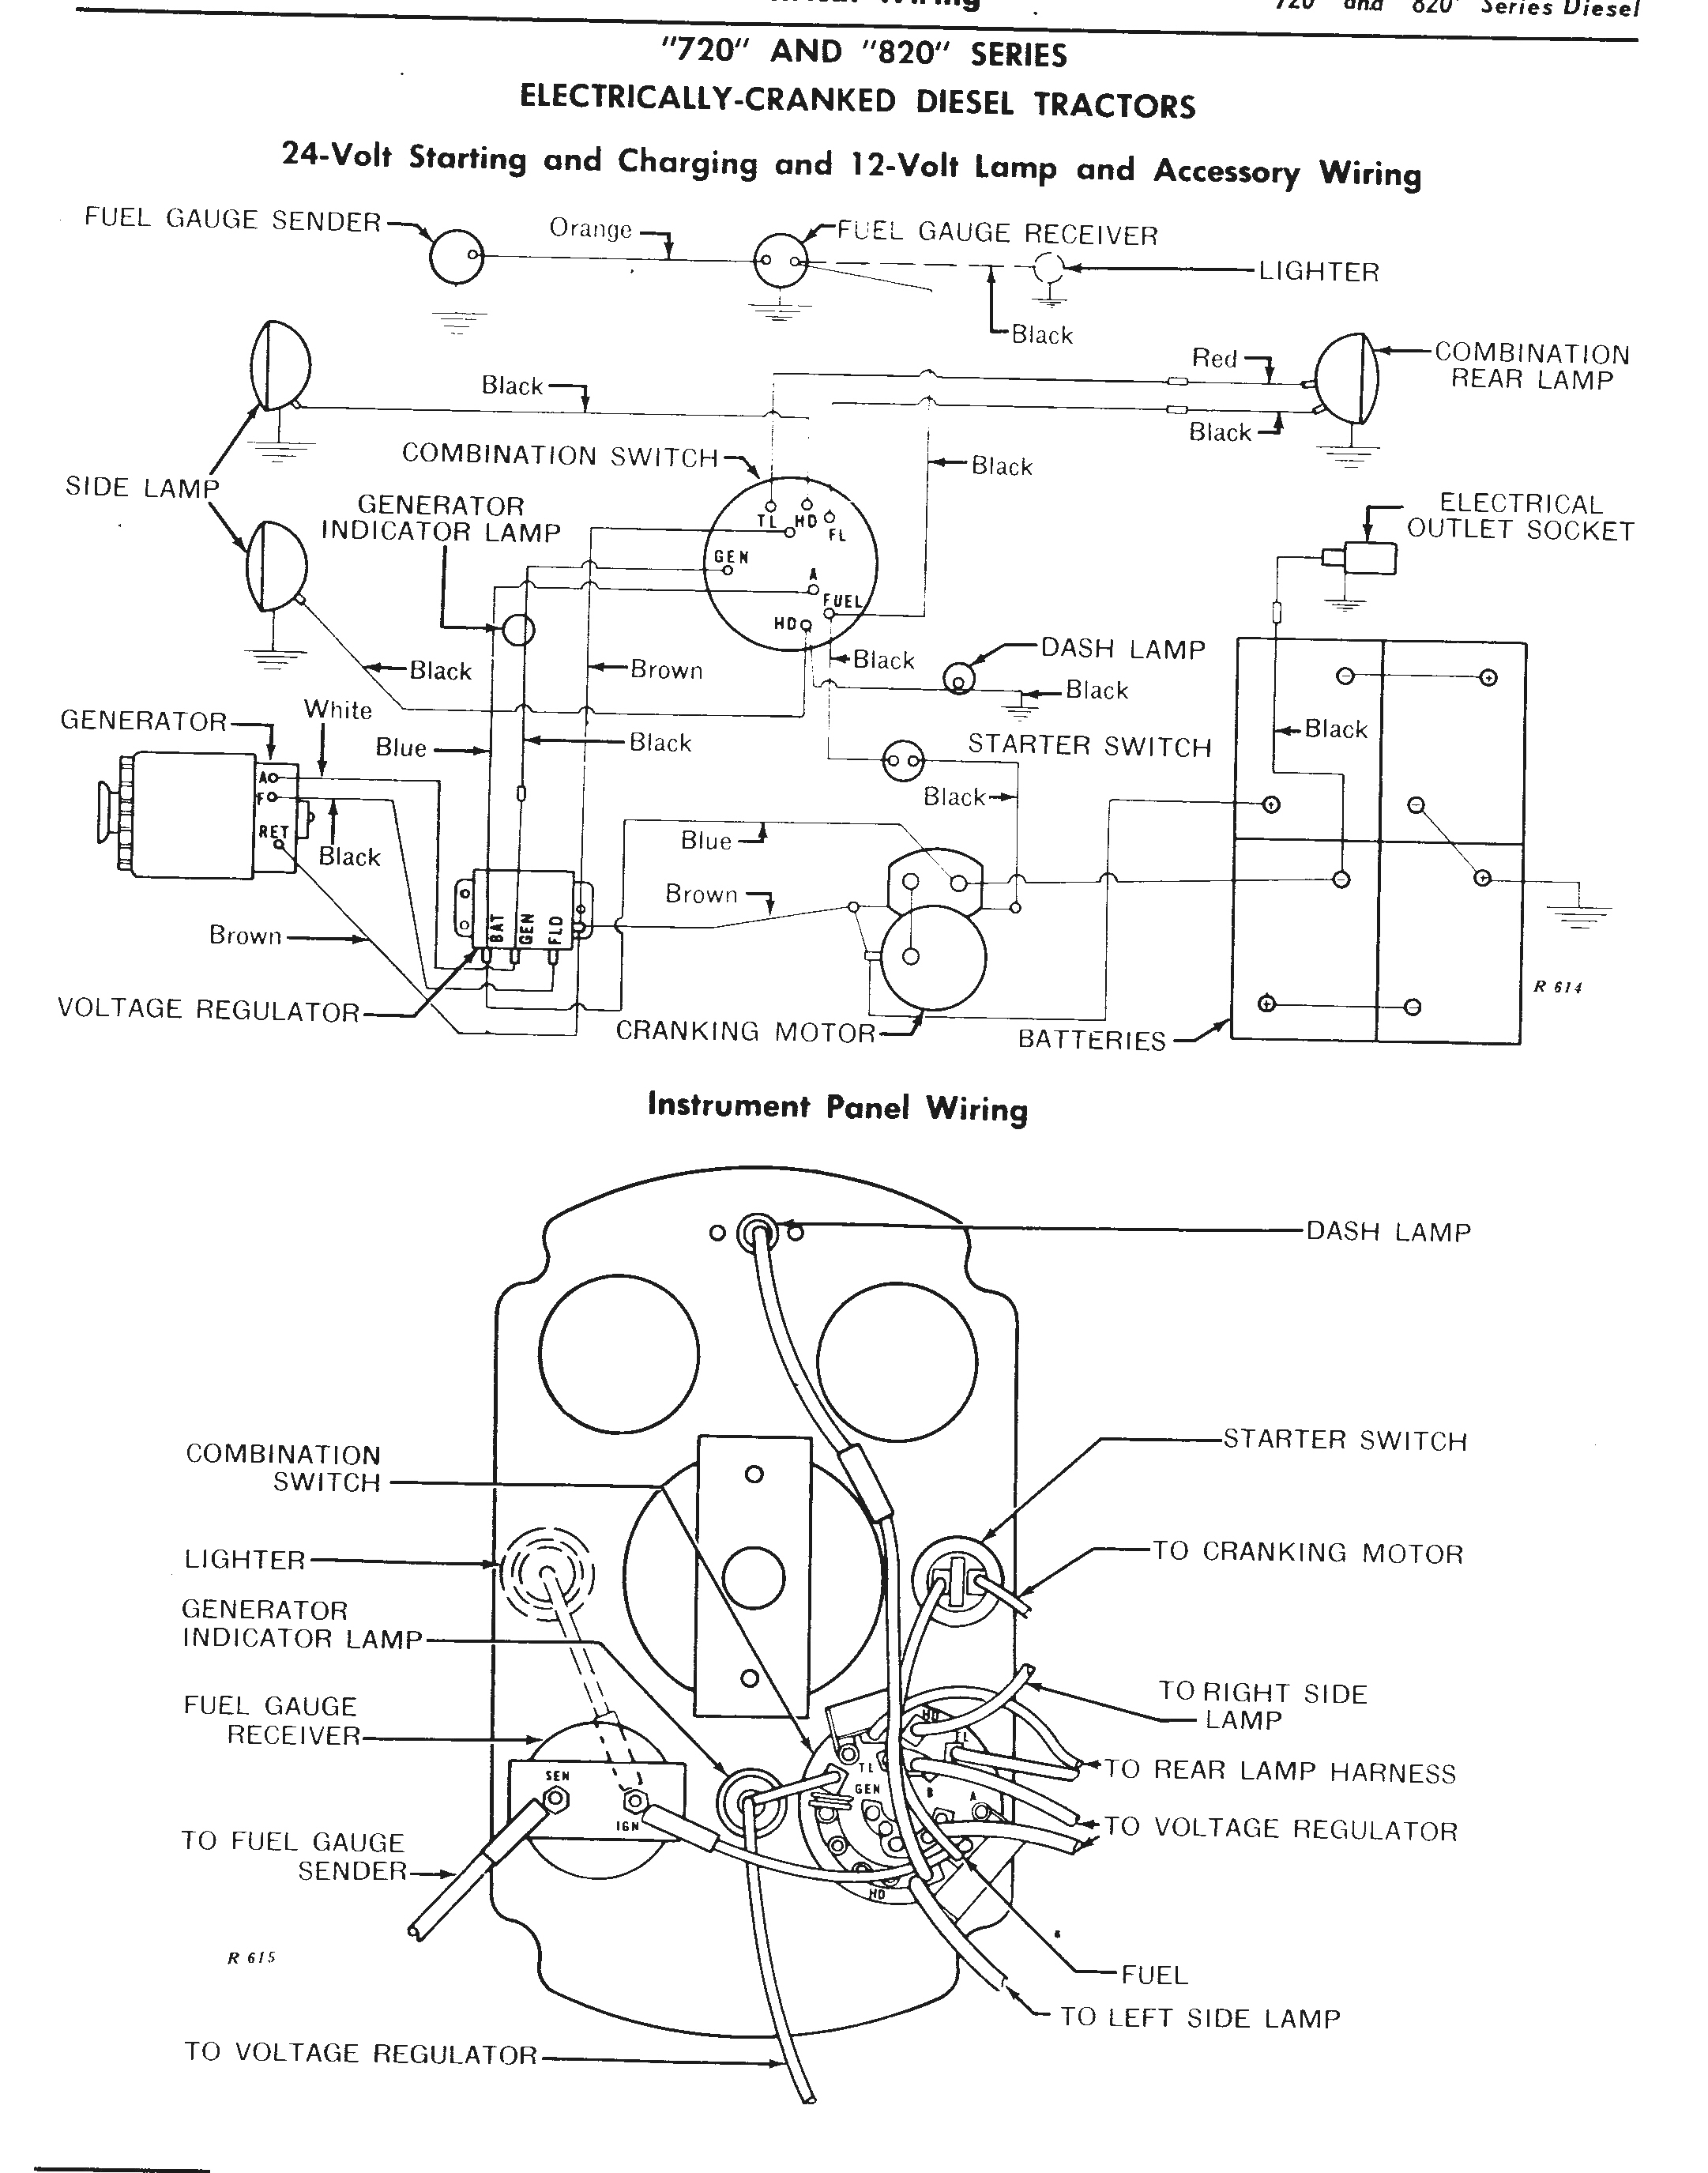 The John Deere 24 Volt Electrical System Explained John Deere Lawn Tractor Electrical Wiring Diagram on john deere lawn mower engine diagram, john deere rx95 wiring-diagram, john deere 112 electric lift wiring diagram, john deere lawn tractor generator, john deere solenoid wiring diagram, john deere 24 volt starter wiring diagram, john deere lawn tractor coil, john deere l125 wiring-diagram, john deere 325 wiring-diagram, john deere lawn tractor lubrication, john deere lt166 wiring-diagram, john deere lawn tractor ignition switch, john deere 318 ignition wiring, john deere 317 ignition diagram, john deere planter wiring diagram, john deere lx255 wiring-diagram, john deere lawn tractor brake pads, john deere lawn mower carburetor diagram, john deere lawn tractor ignition system, john deere 110 wiring diagram,